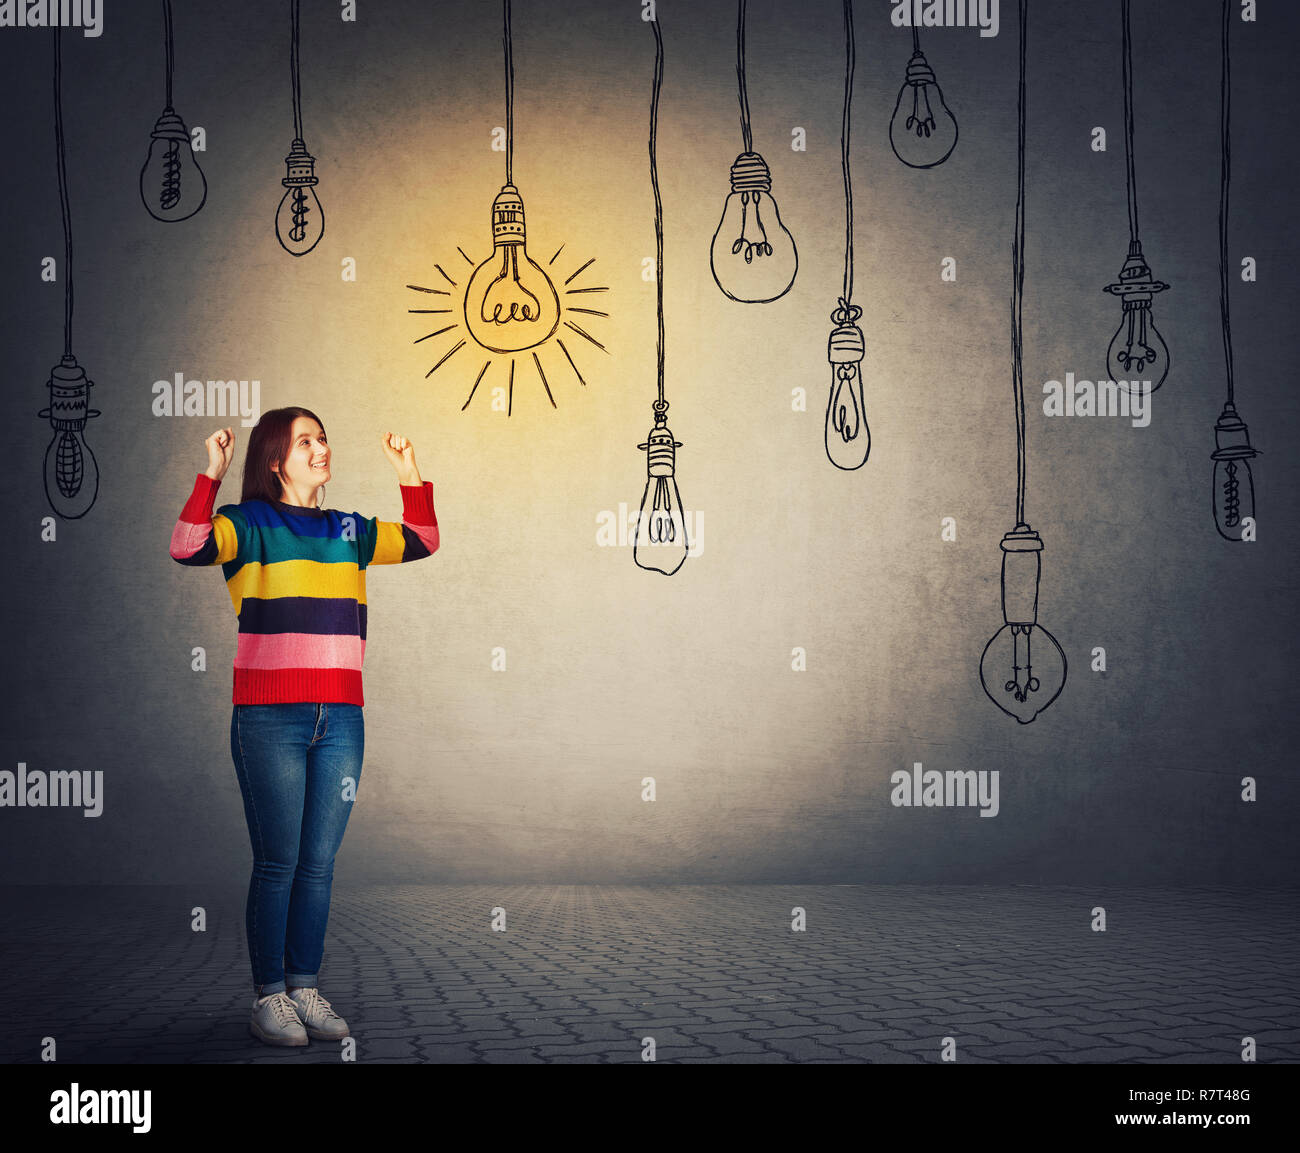 Full length portrait of cheerful young woman celebrate raising fists up looking at a glowing, suspended lightbulb. One bulb shine while others are swi - Stock Image